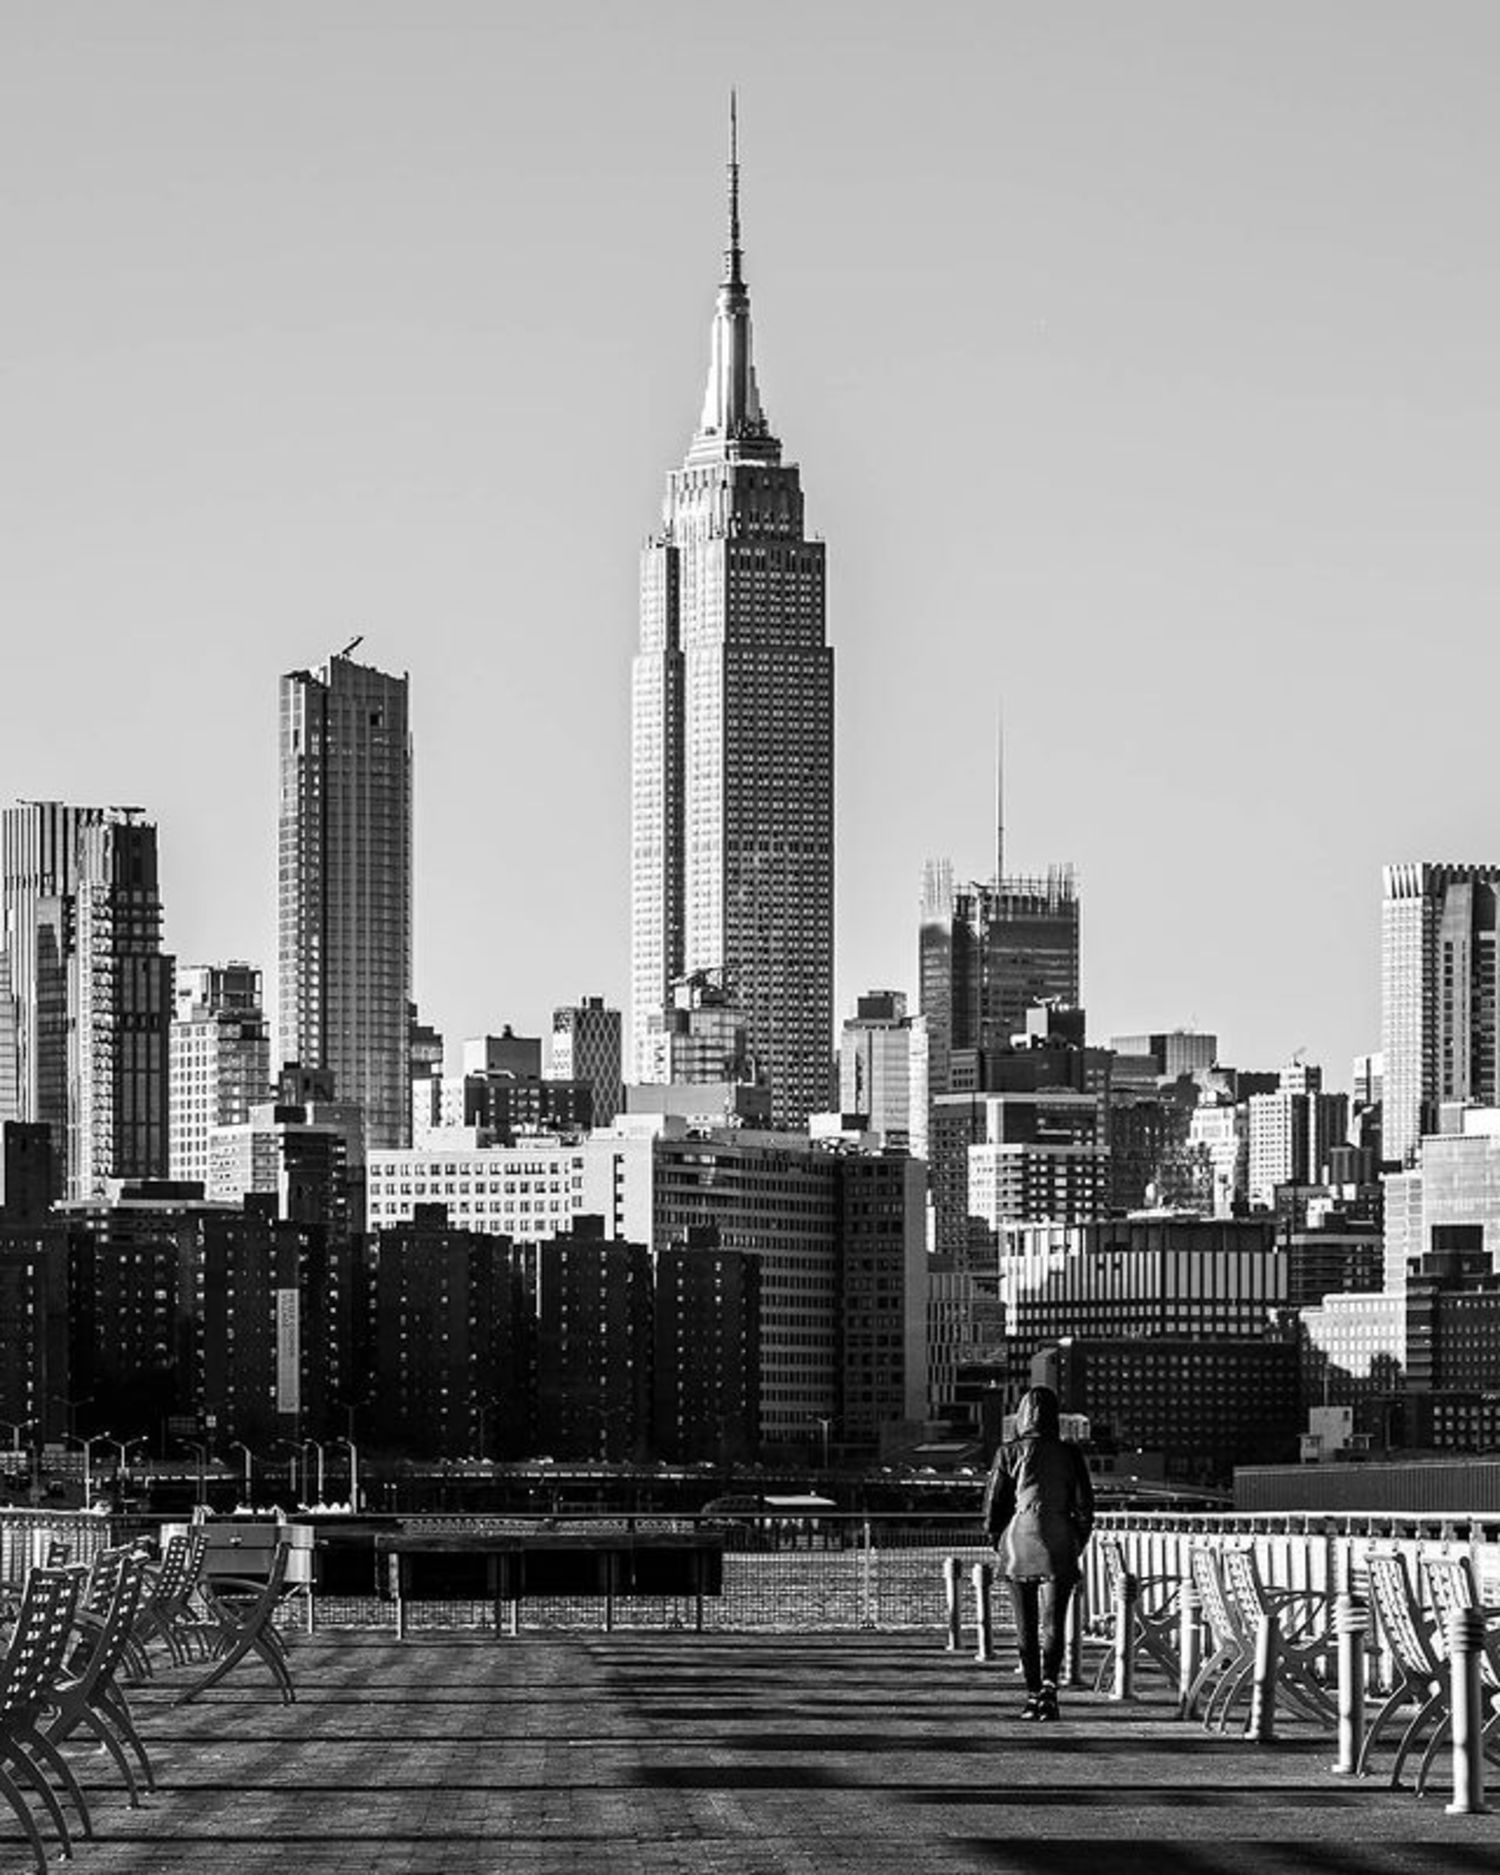 Empire State Building from Williamsburg, Brooklyn